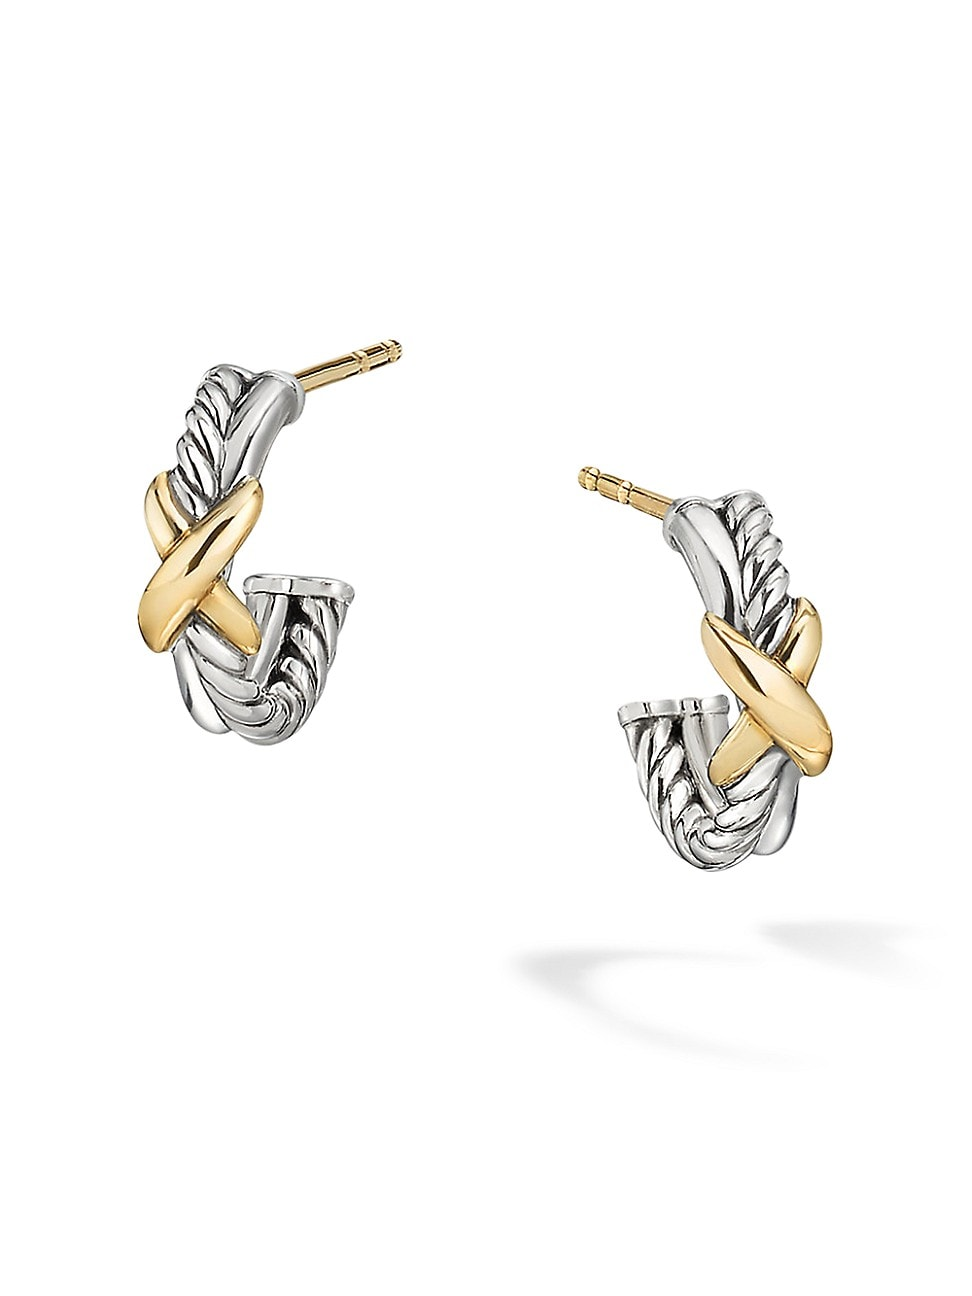 David Yurman WOMEN'S PETITE X MINI HOOP EARRINGS WITH 18K YELLOW GOLD